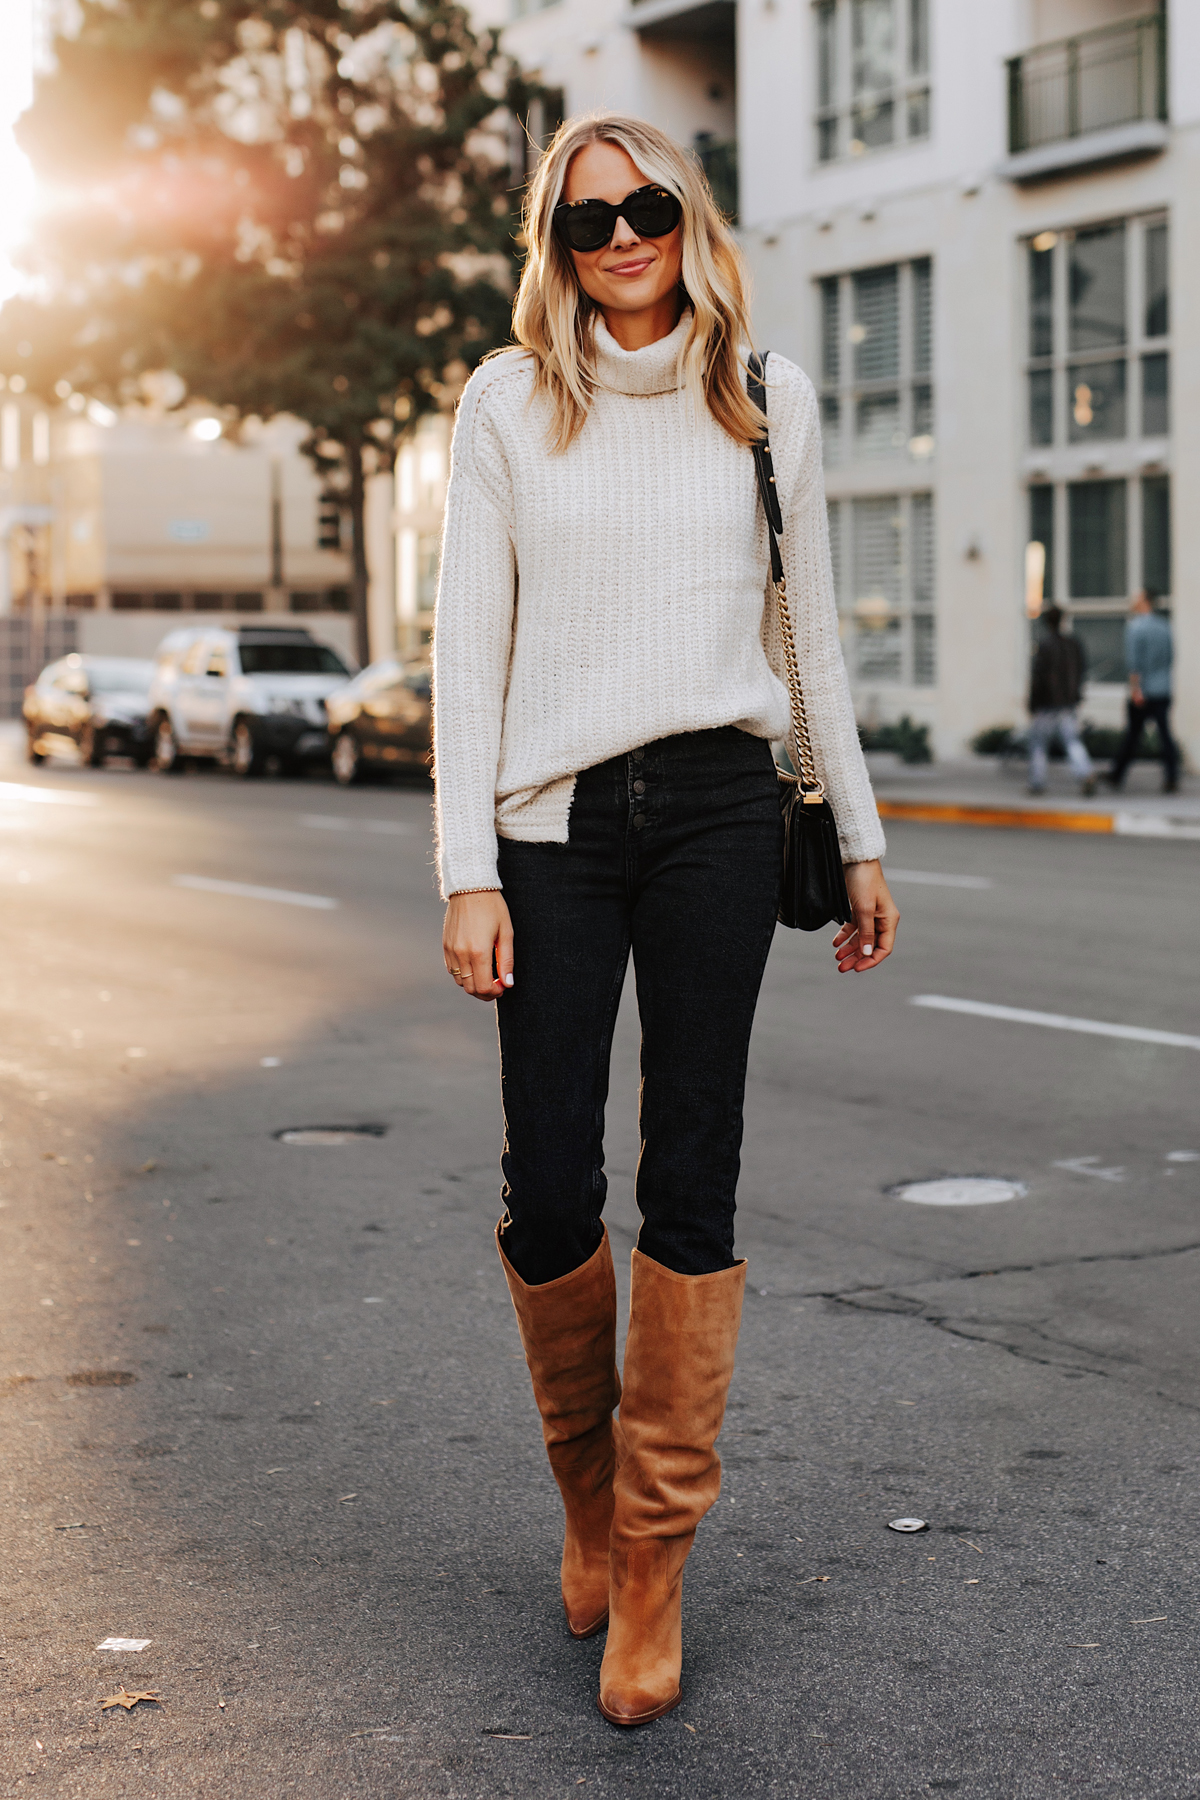 Fashion Jackson Wearing Abercrombie White Turtleneck Sweater Black Jeans Sam Edelman Tan Knee High Boots Fall Outfit